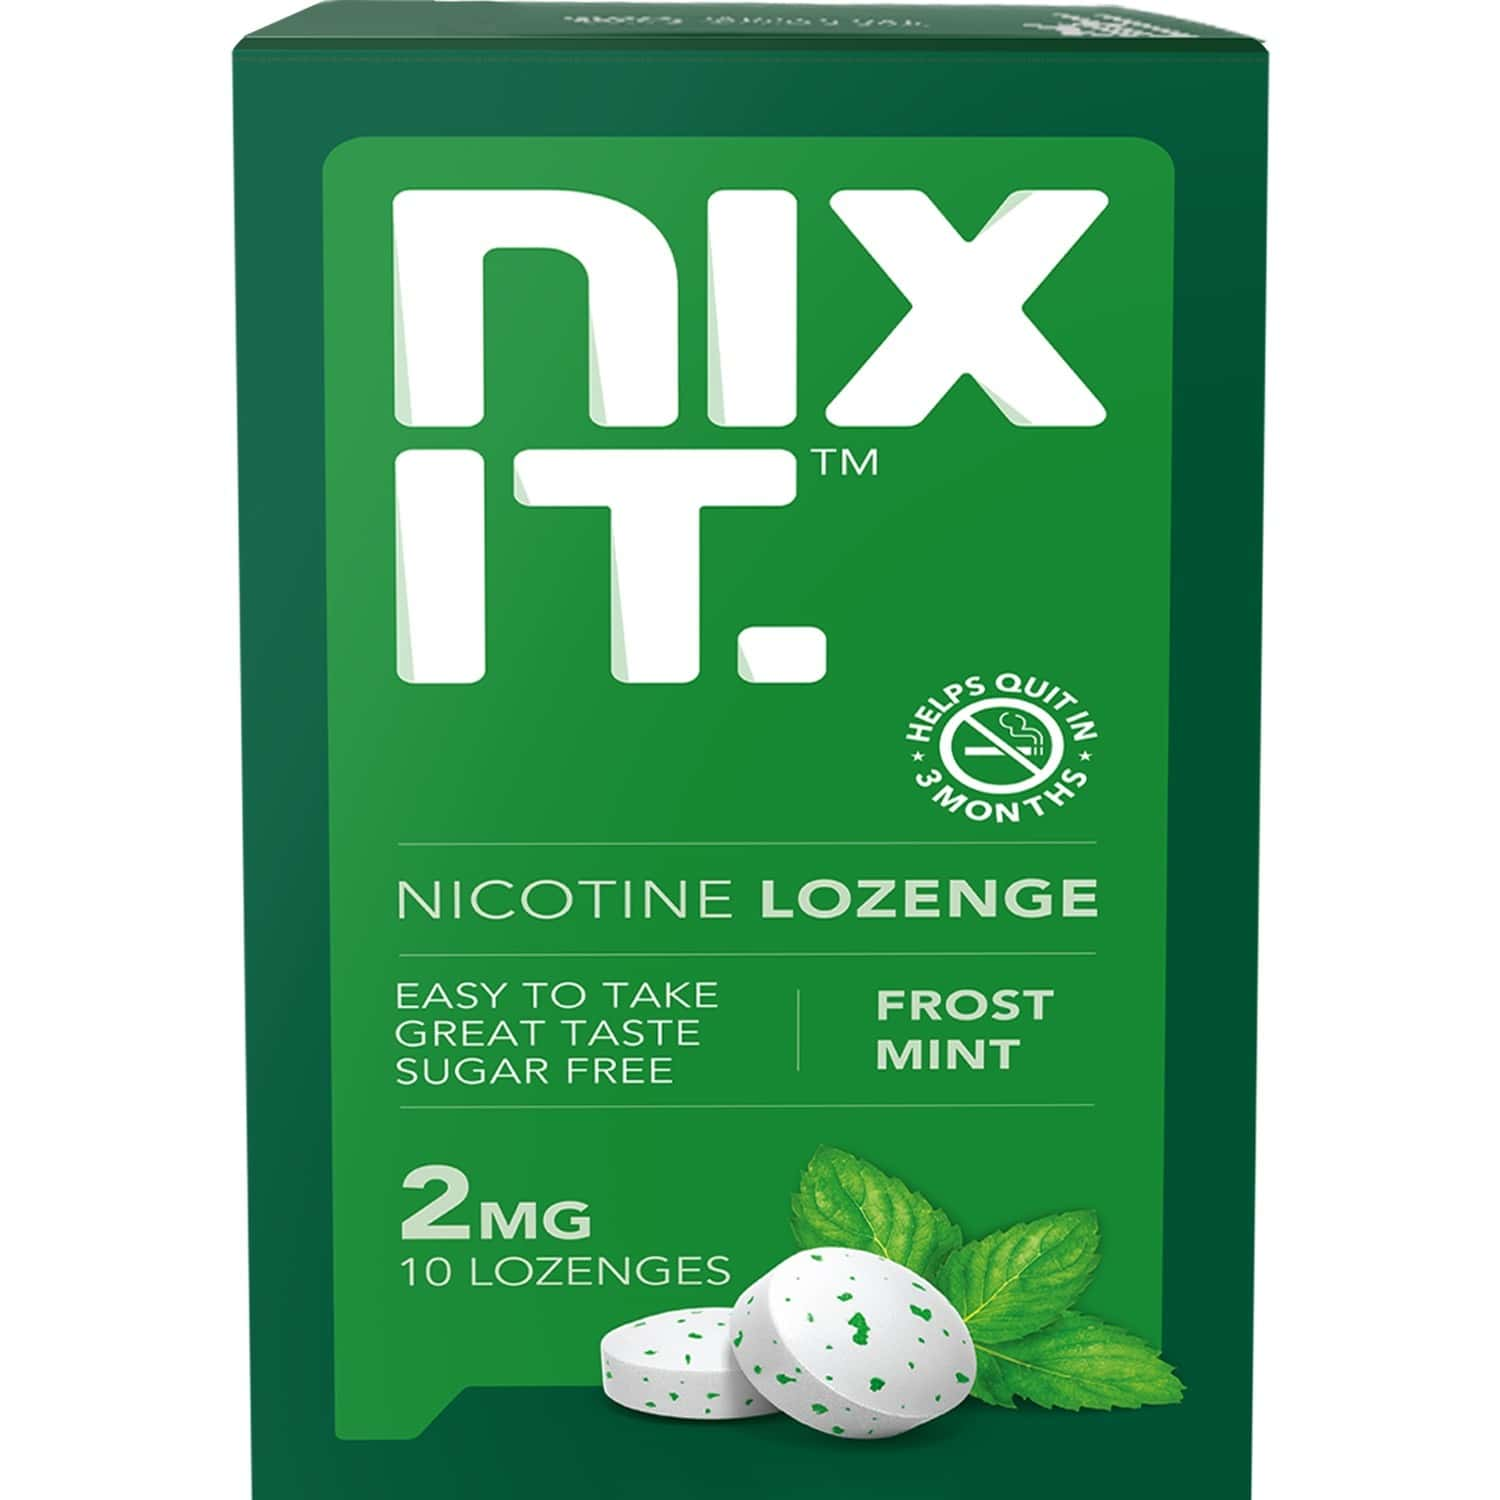 Nixit Nicotine Frost Mint Lozenges 2mg, Sugar Free (pack Of 5) - Helps Quit Smoking